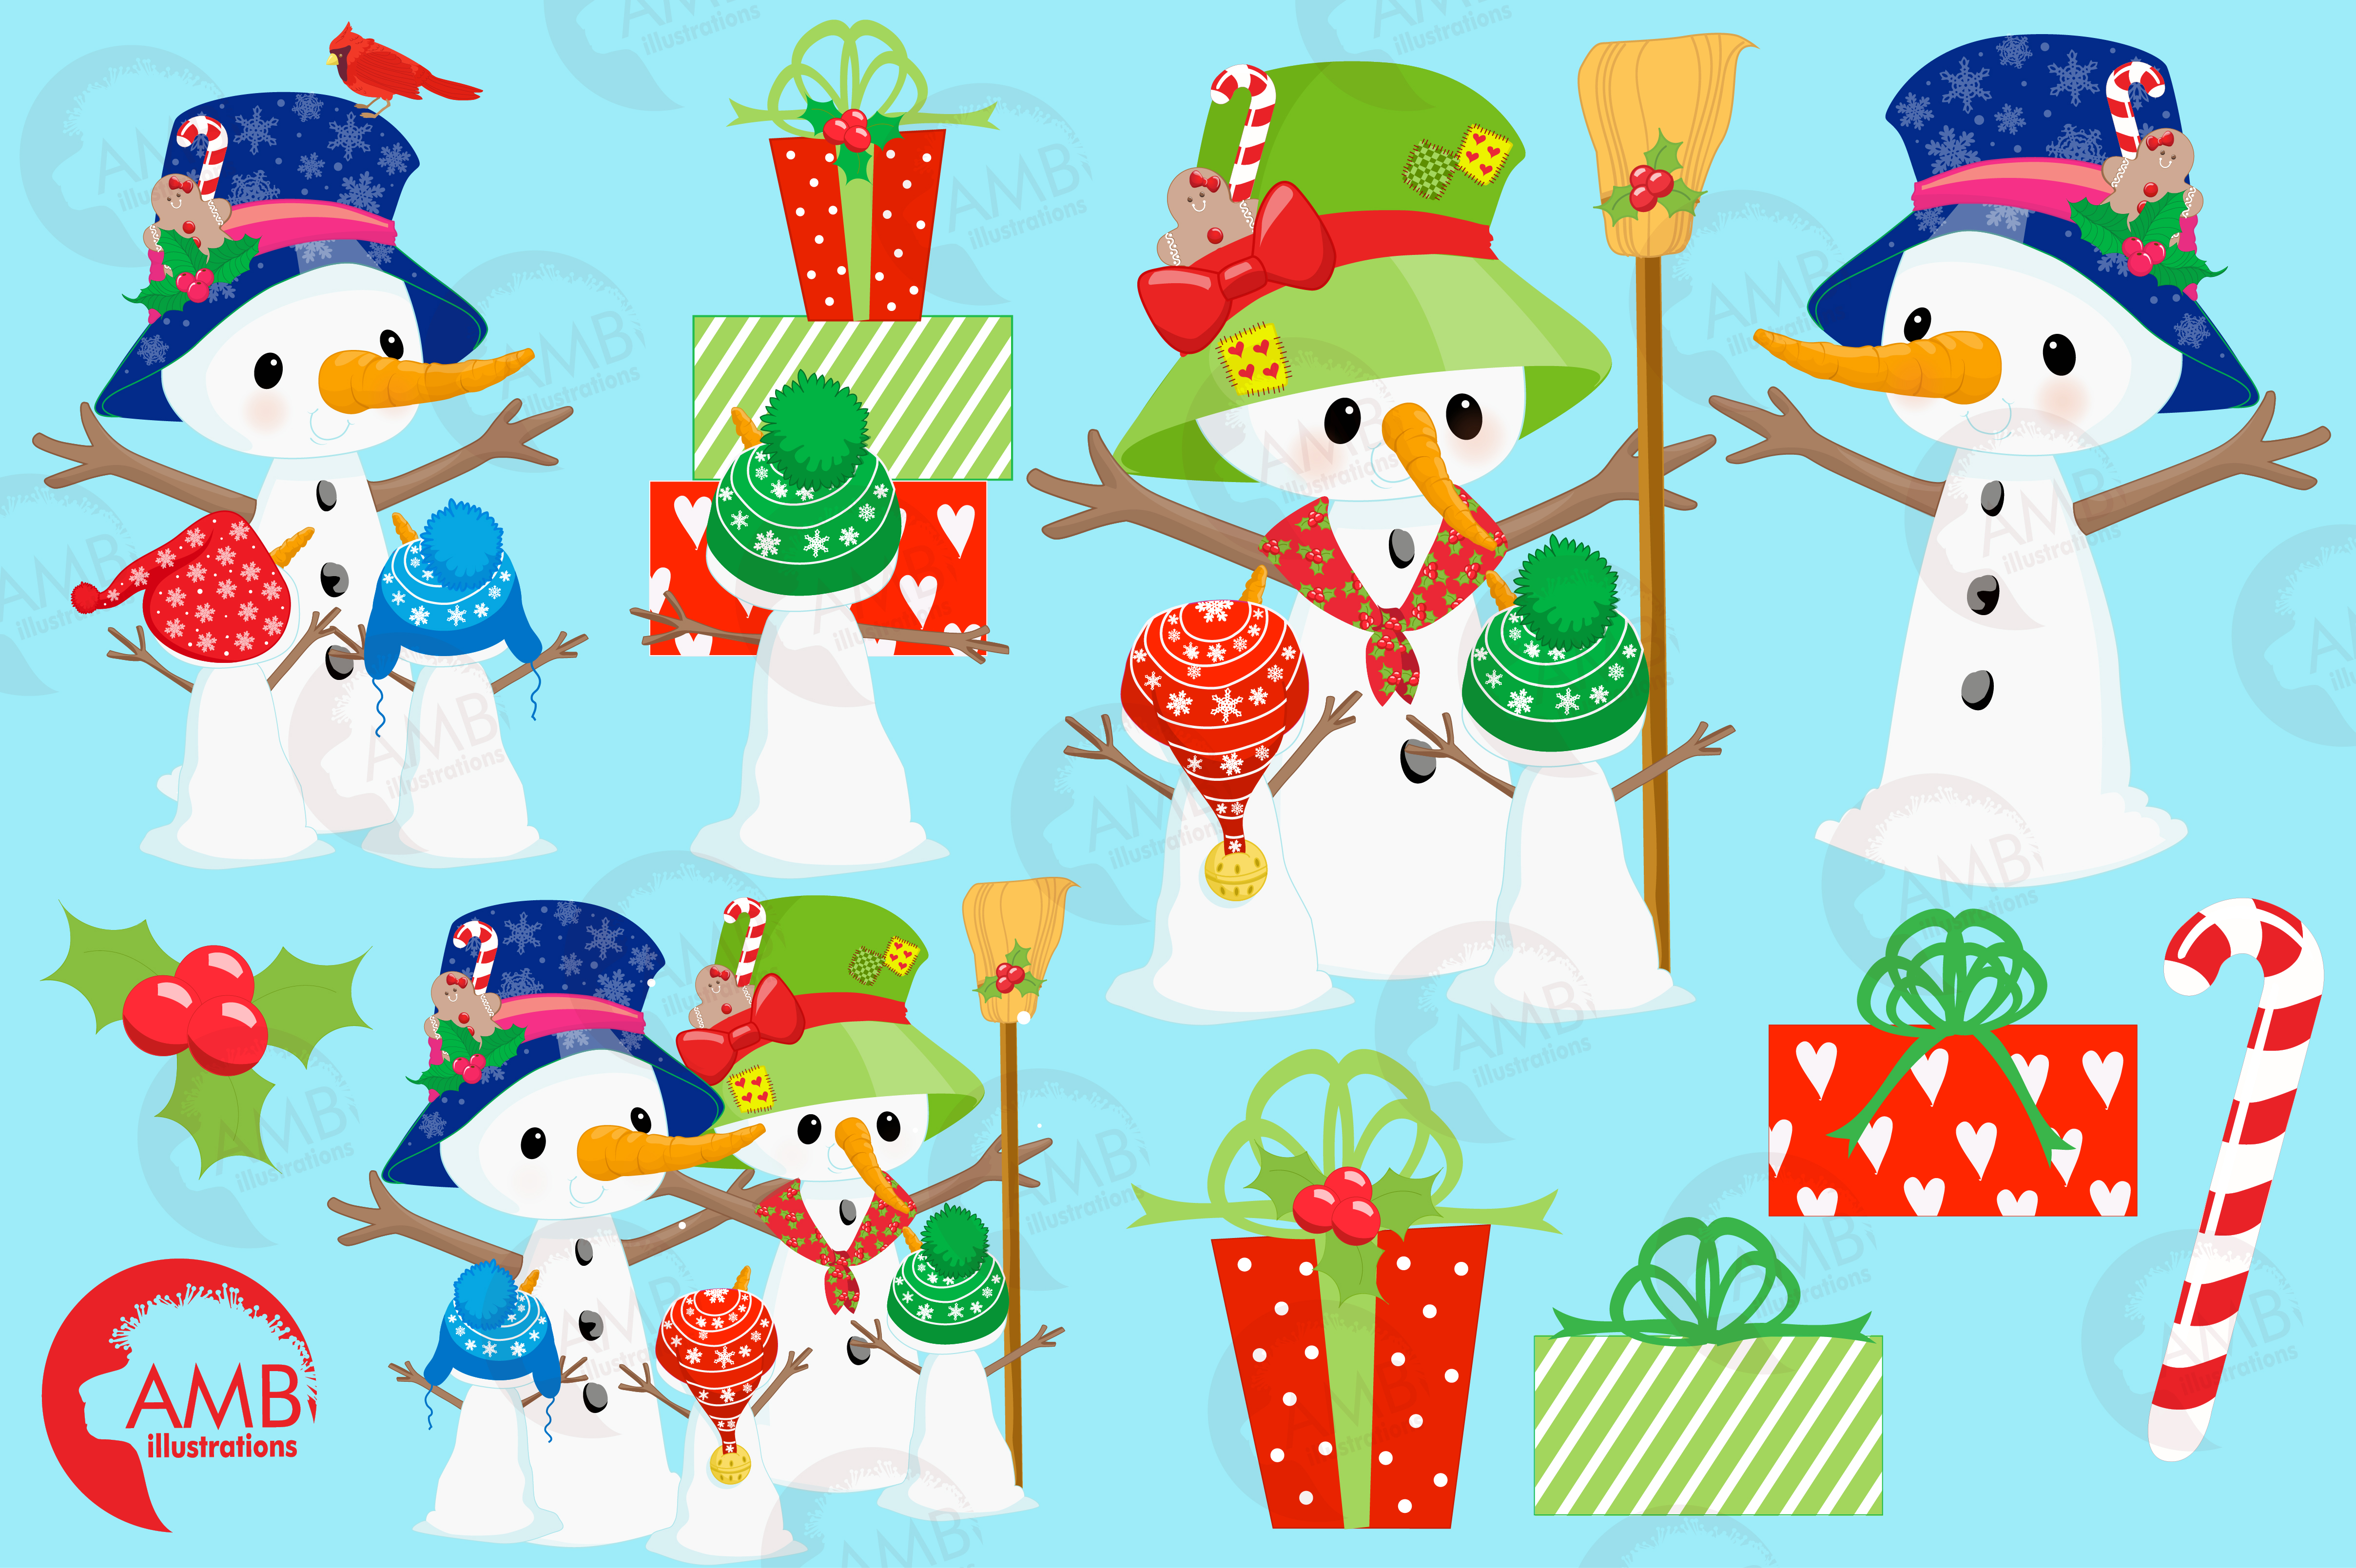 Snowman Clipart, Christmas Clipart, Frosty the Snowmen Clipart, Snowman Family, Snowman Clipart, AMB-1512clipart, graphics, illustrations AMB-1512 example image 3